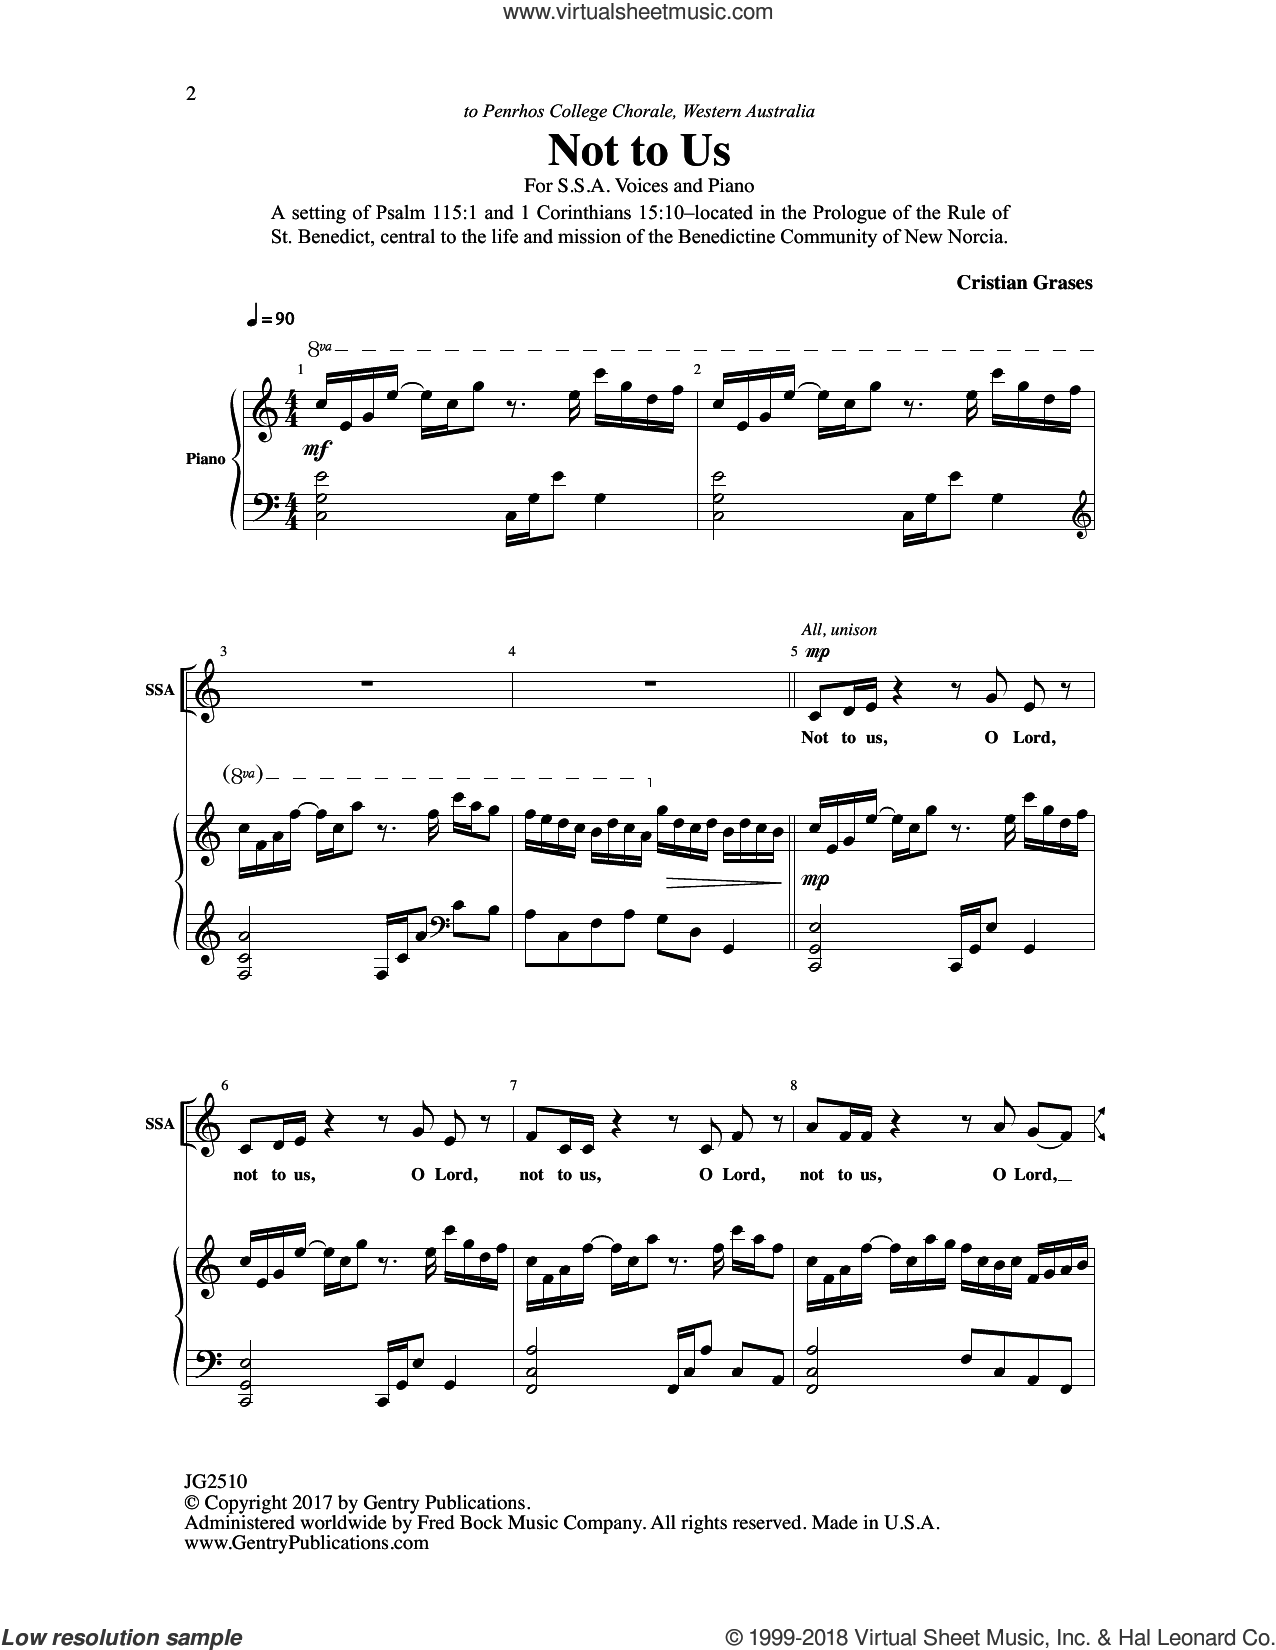 Not to Us sheet music for choir by Cristian Grases, intermediate skill level